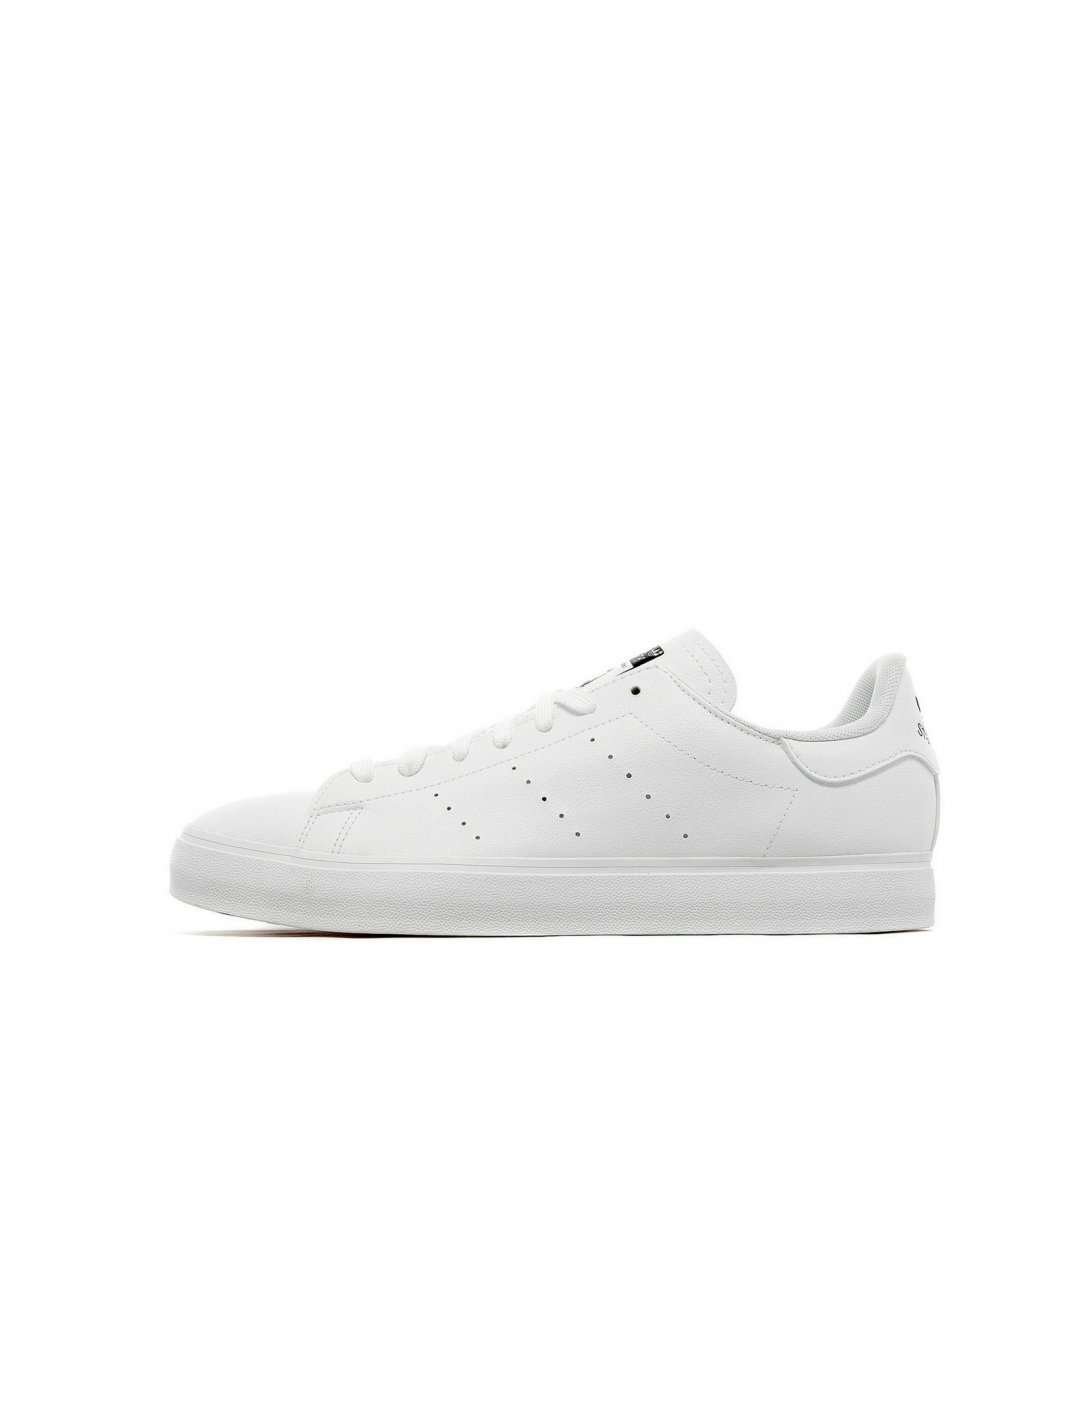 "Matt's Stan Smith Sneakers {""id"":12,""product_section_id"":1,""name"":""Shoes"",""order"":12} Adidas"